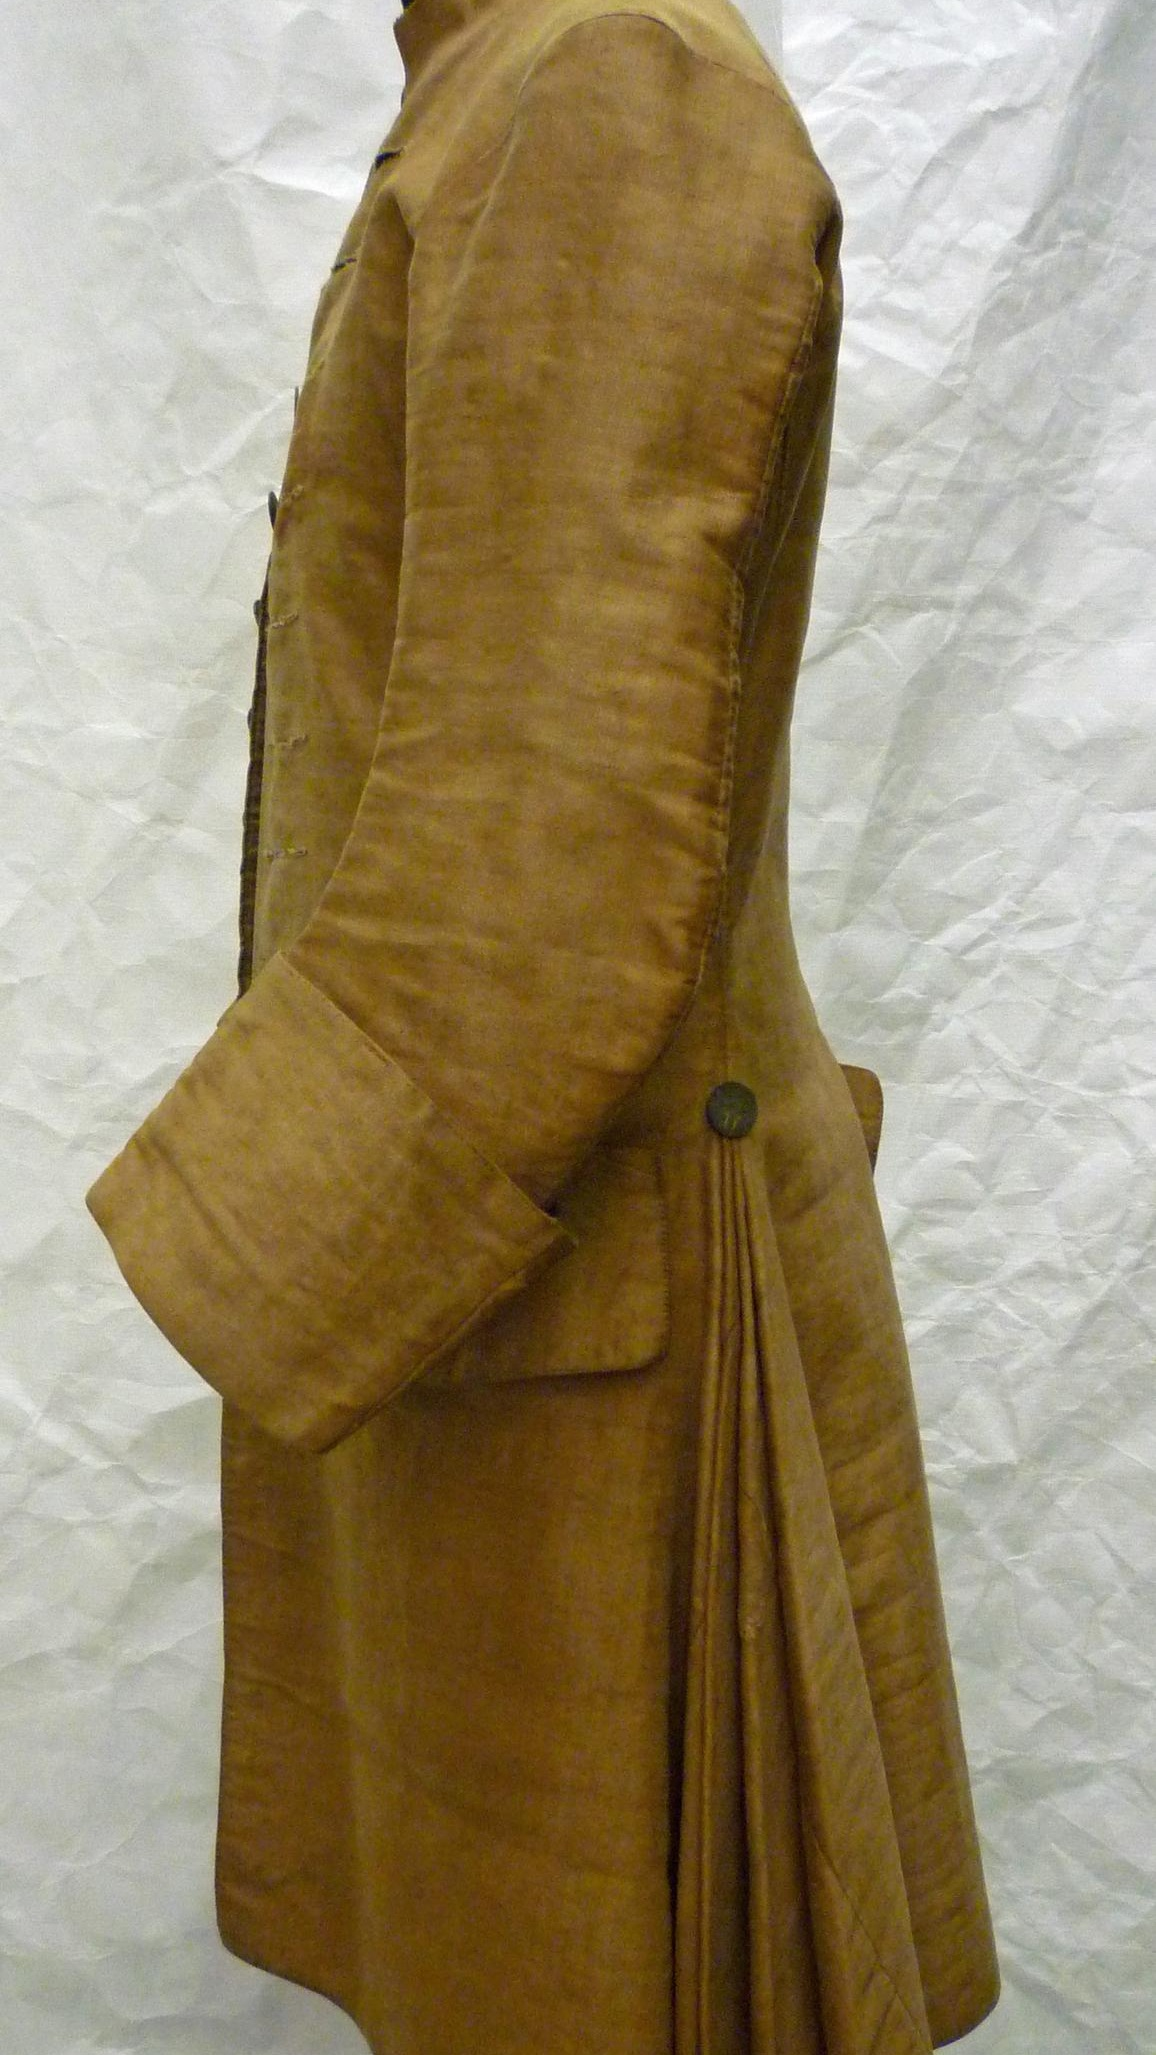 1750-1759 (made) Linen, cotton, pewter; hand-woven fustian, hand-sewn, engine-turned © Victoria and Albert Museum, London